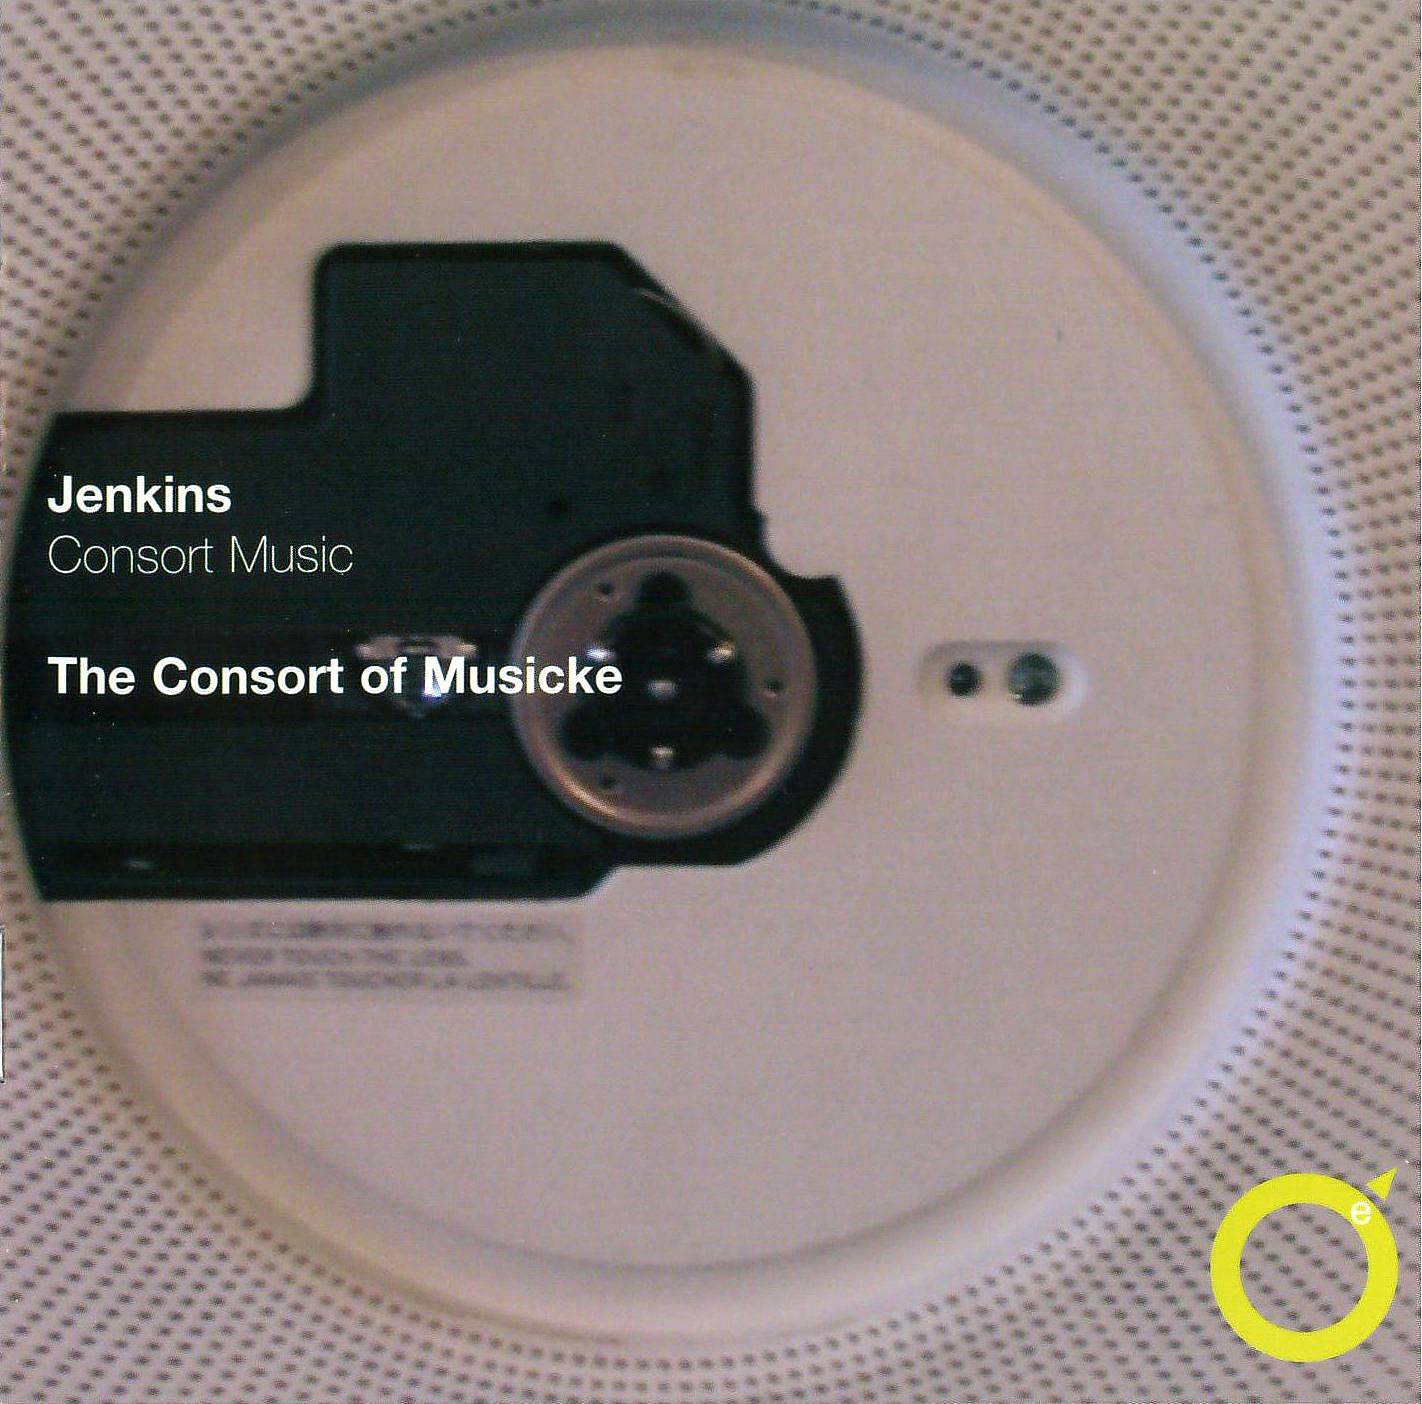 The Consort of Musicke, Trevor Jones - John Jenkins: Consort Music (1983) Reissue 2006